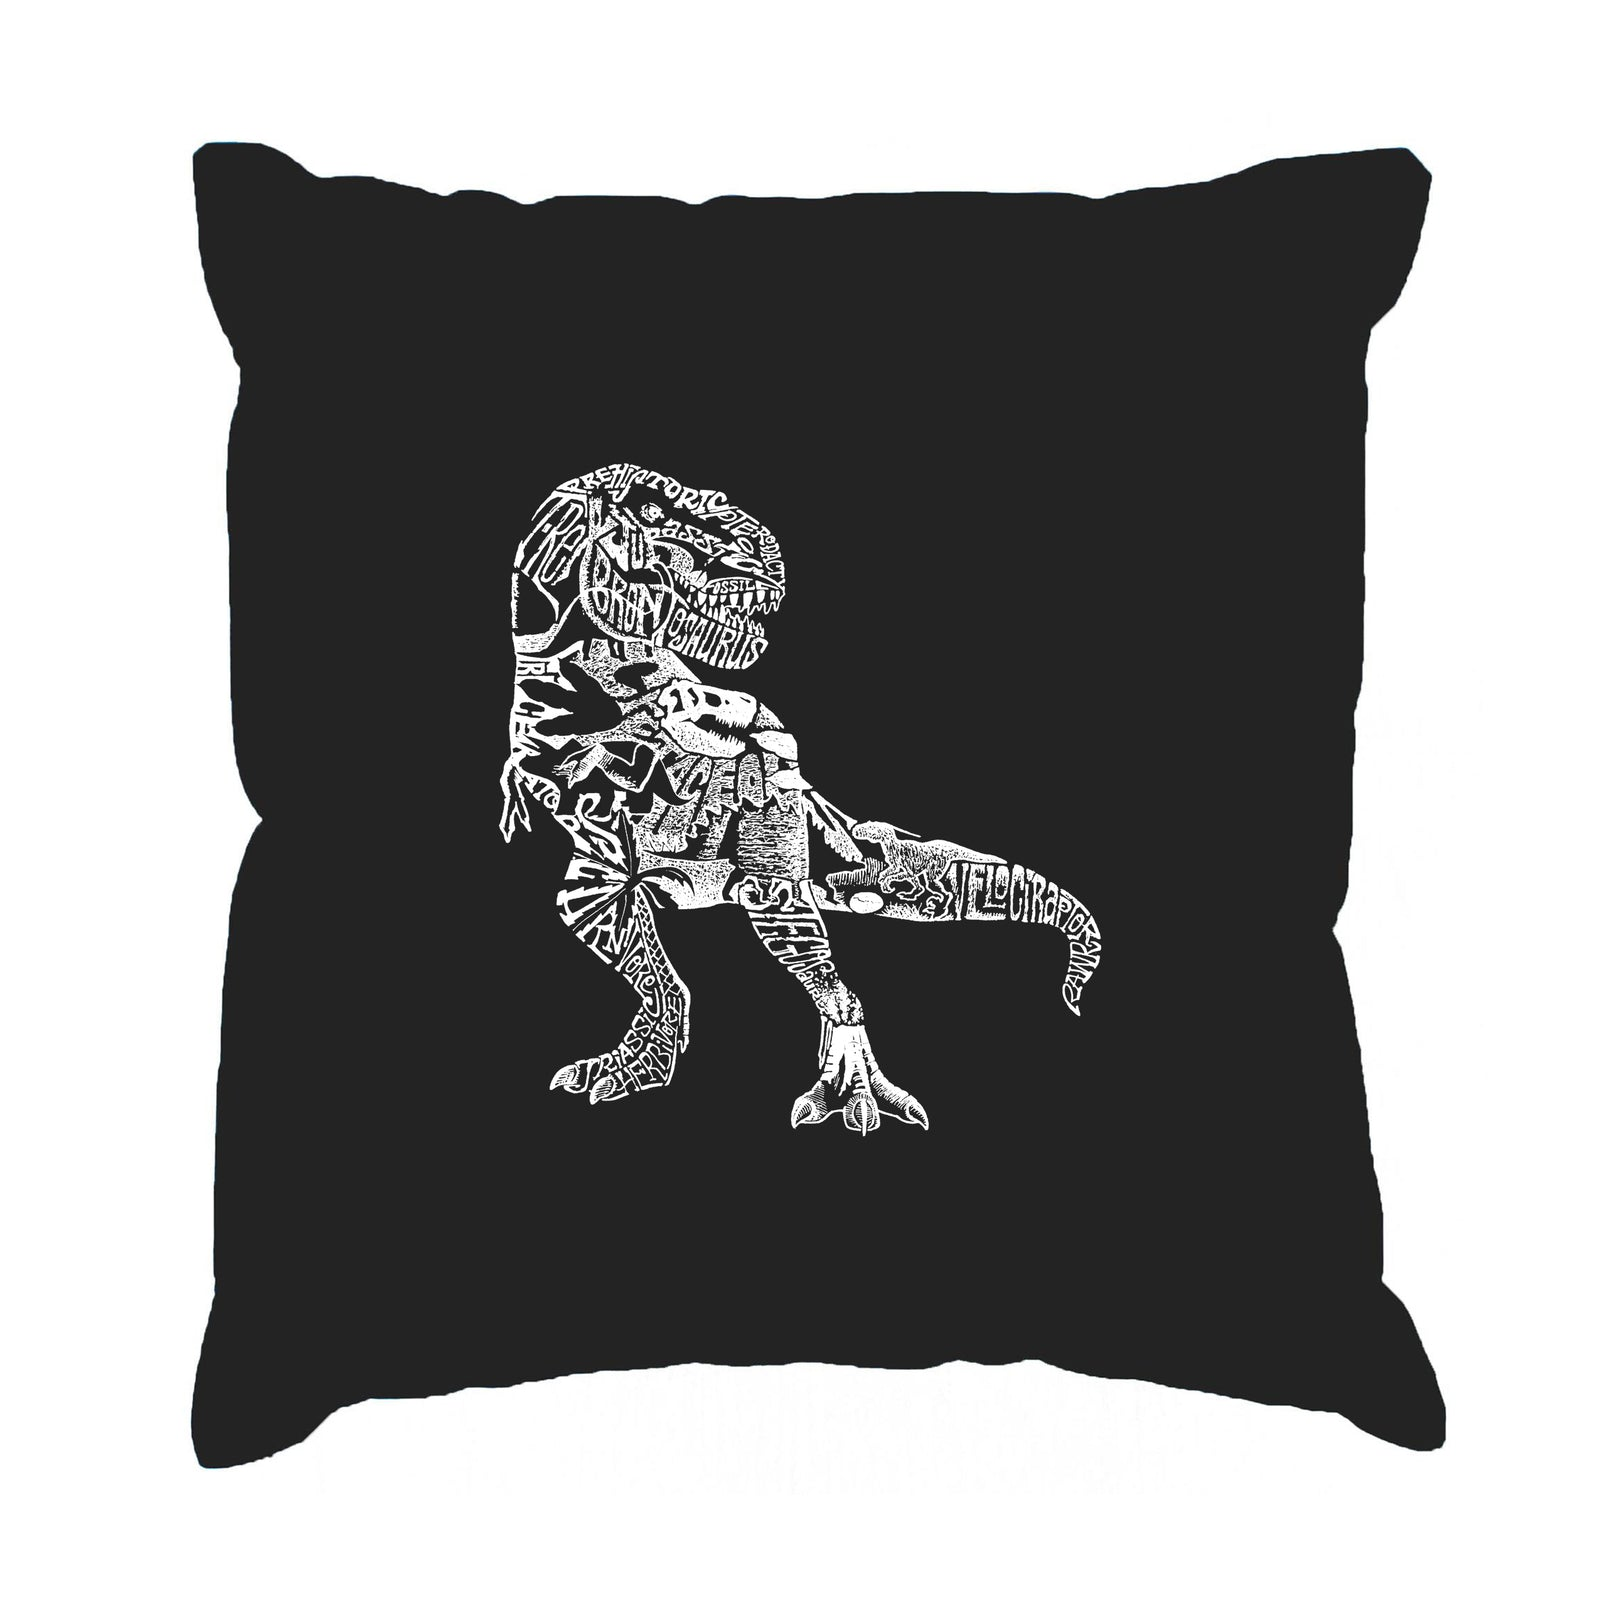 Throw Pillow Cover - Word Art - Dino Pics